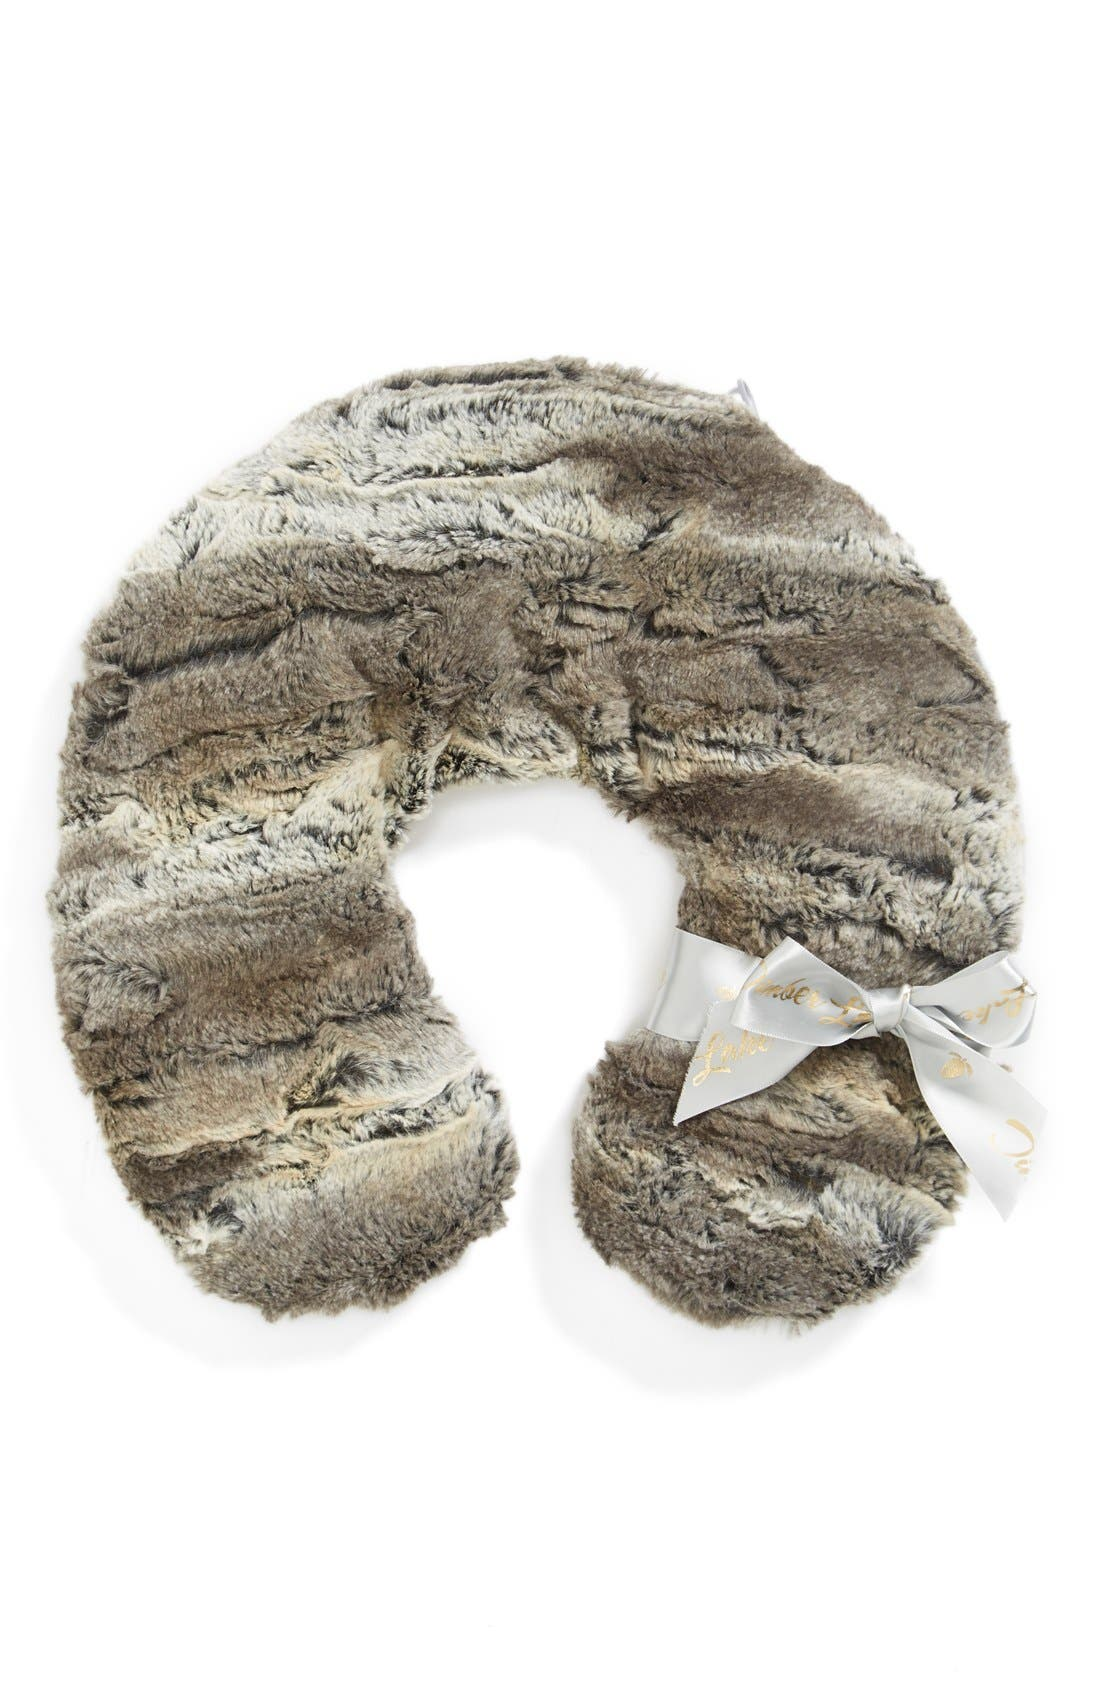 Main Image - Sonoma Lavender Timber Lake Neck Pillow (Limited Edition)